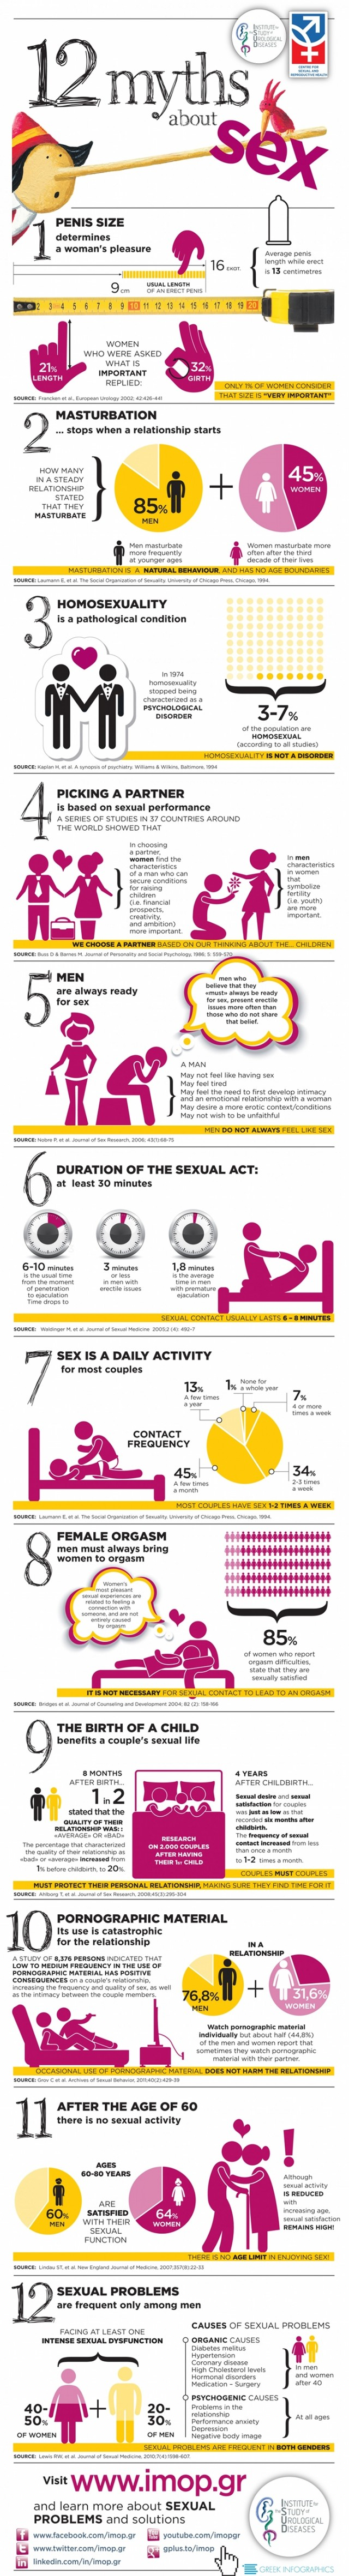 05 12-myths-about-sex_51438561daaaa_w1805-640x4726